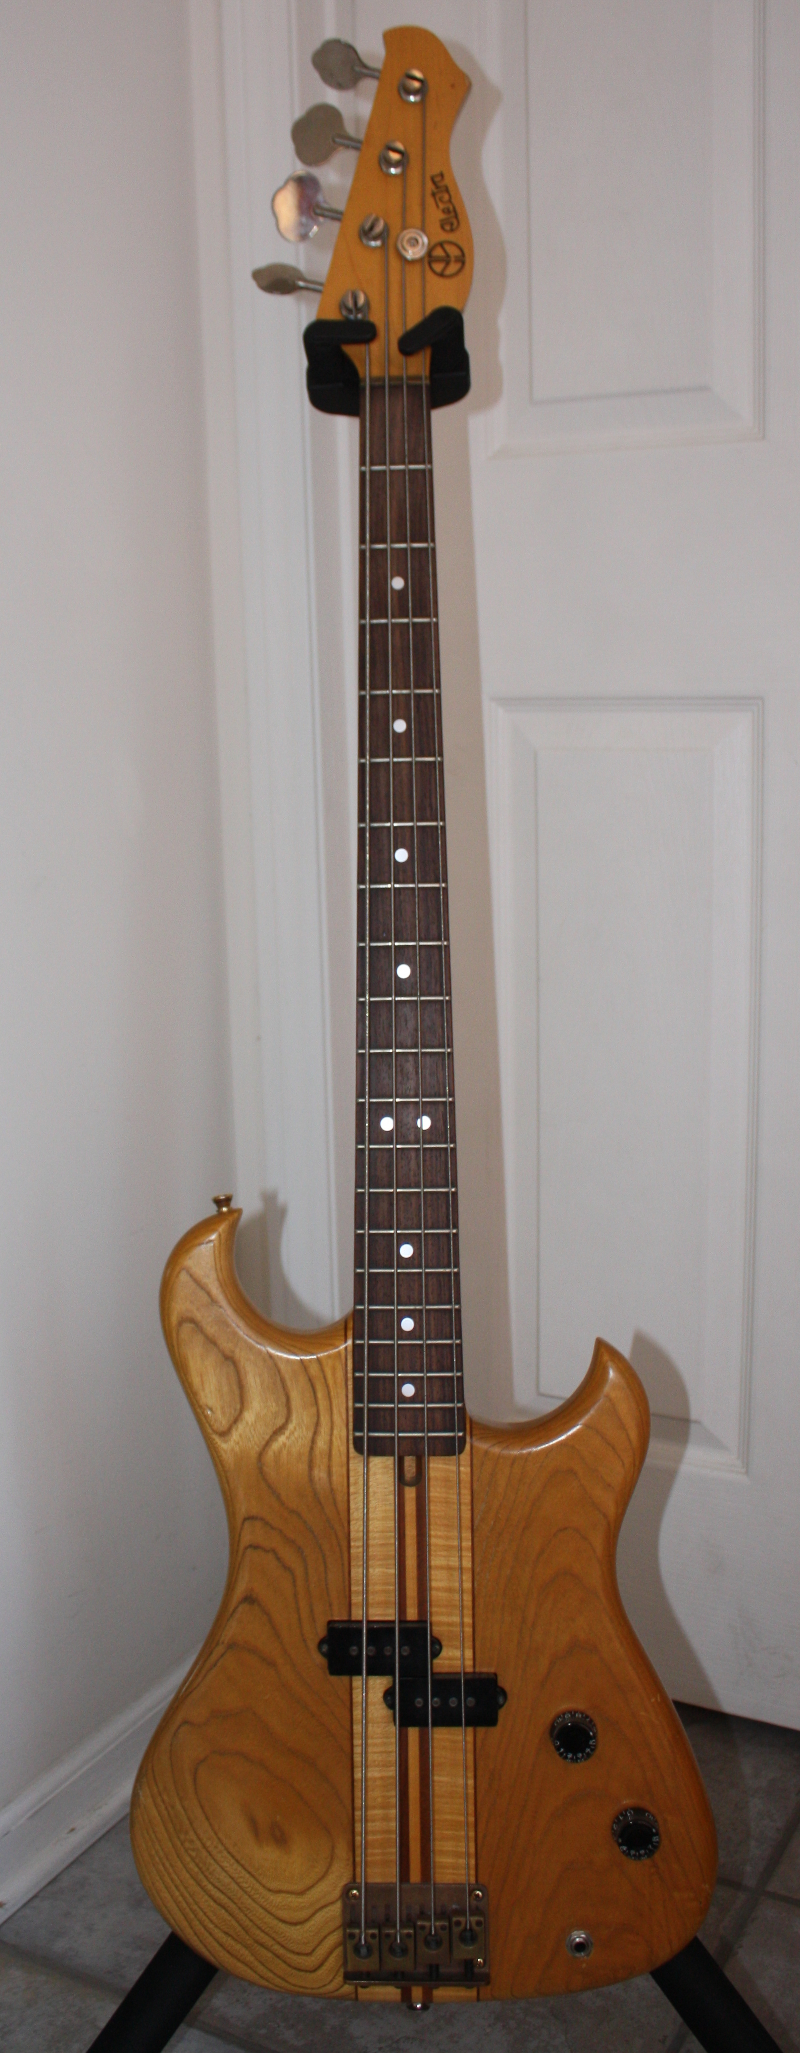 Fine Strat Wiring Mods Tiny Bass Support Regular Dimarzio Switch Les Paul 3 Pickup Wiring Diagram Young Bulldog Remote Start Installation SoftGuitar Pickup Installation The X635 Anniversary: Far From Bass Ic (Ugh)   Riverside Green